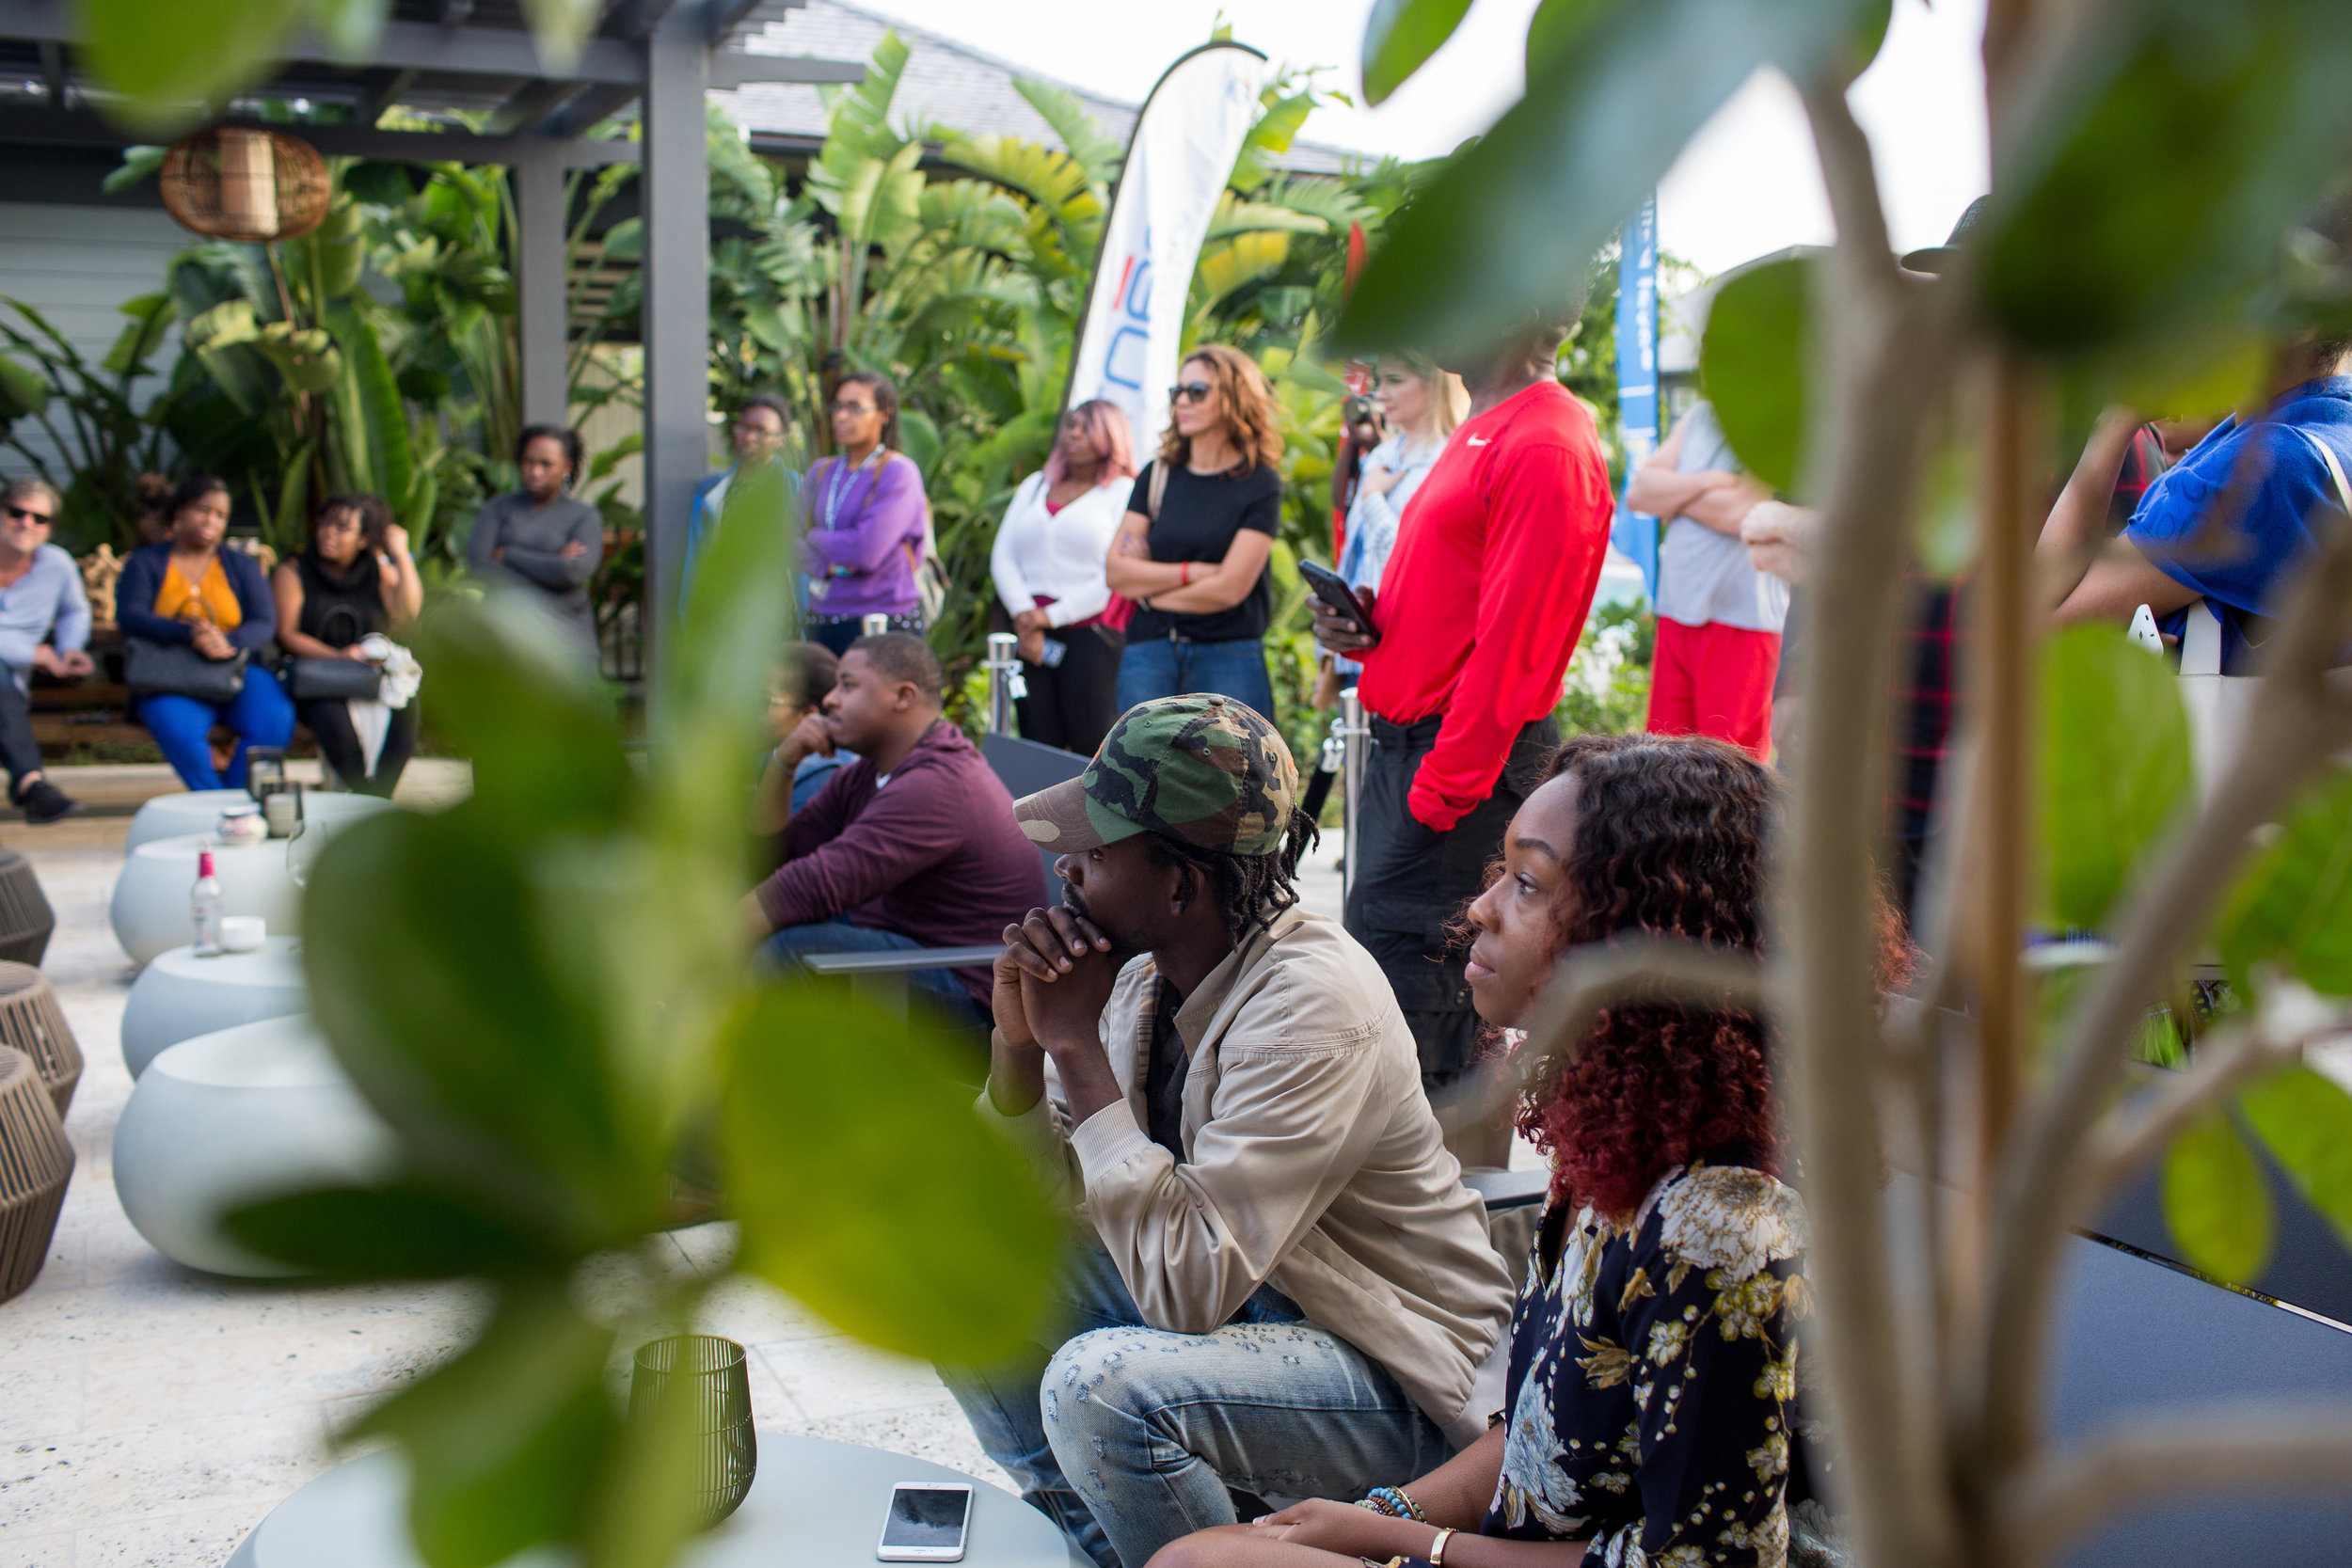 The Island House Film Festival 2018 hosted a wide range of screenings, talks and workshops where guests from across the island were able to learn from and engage in discussion with filmmakers from The Bahamas, the Caribbean and around the world. Image courtesy of The Island House / Photographed by Dede Brown